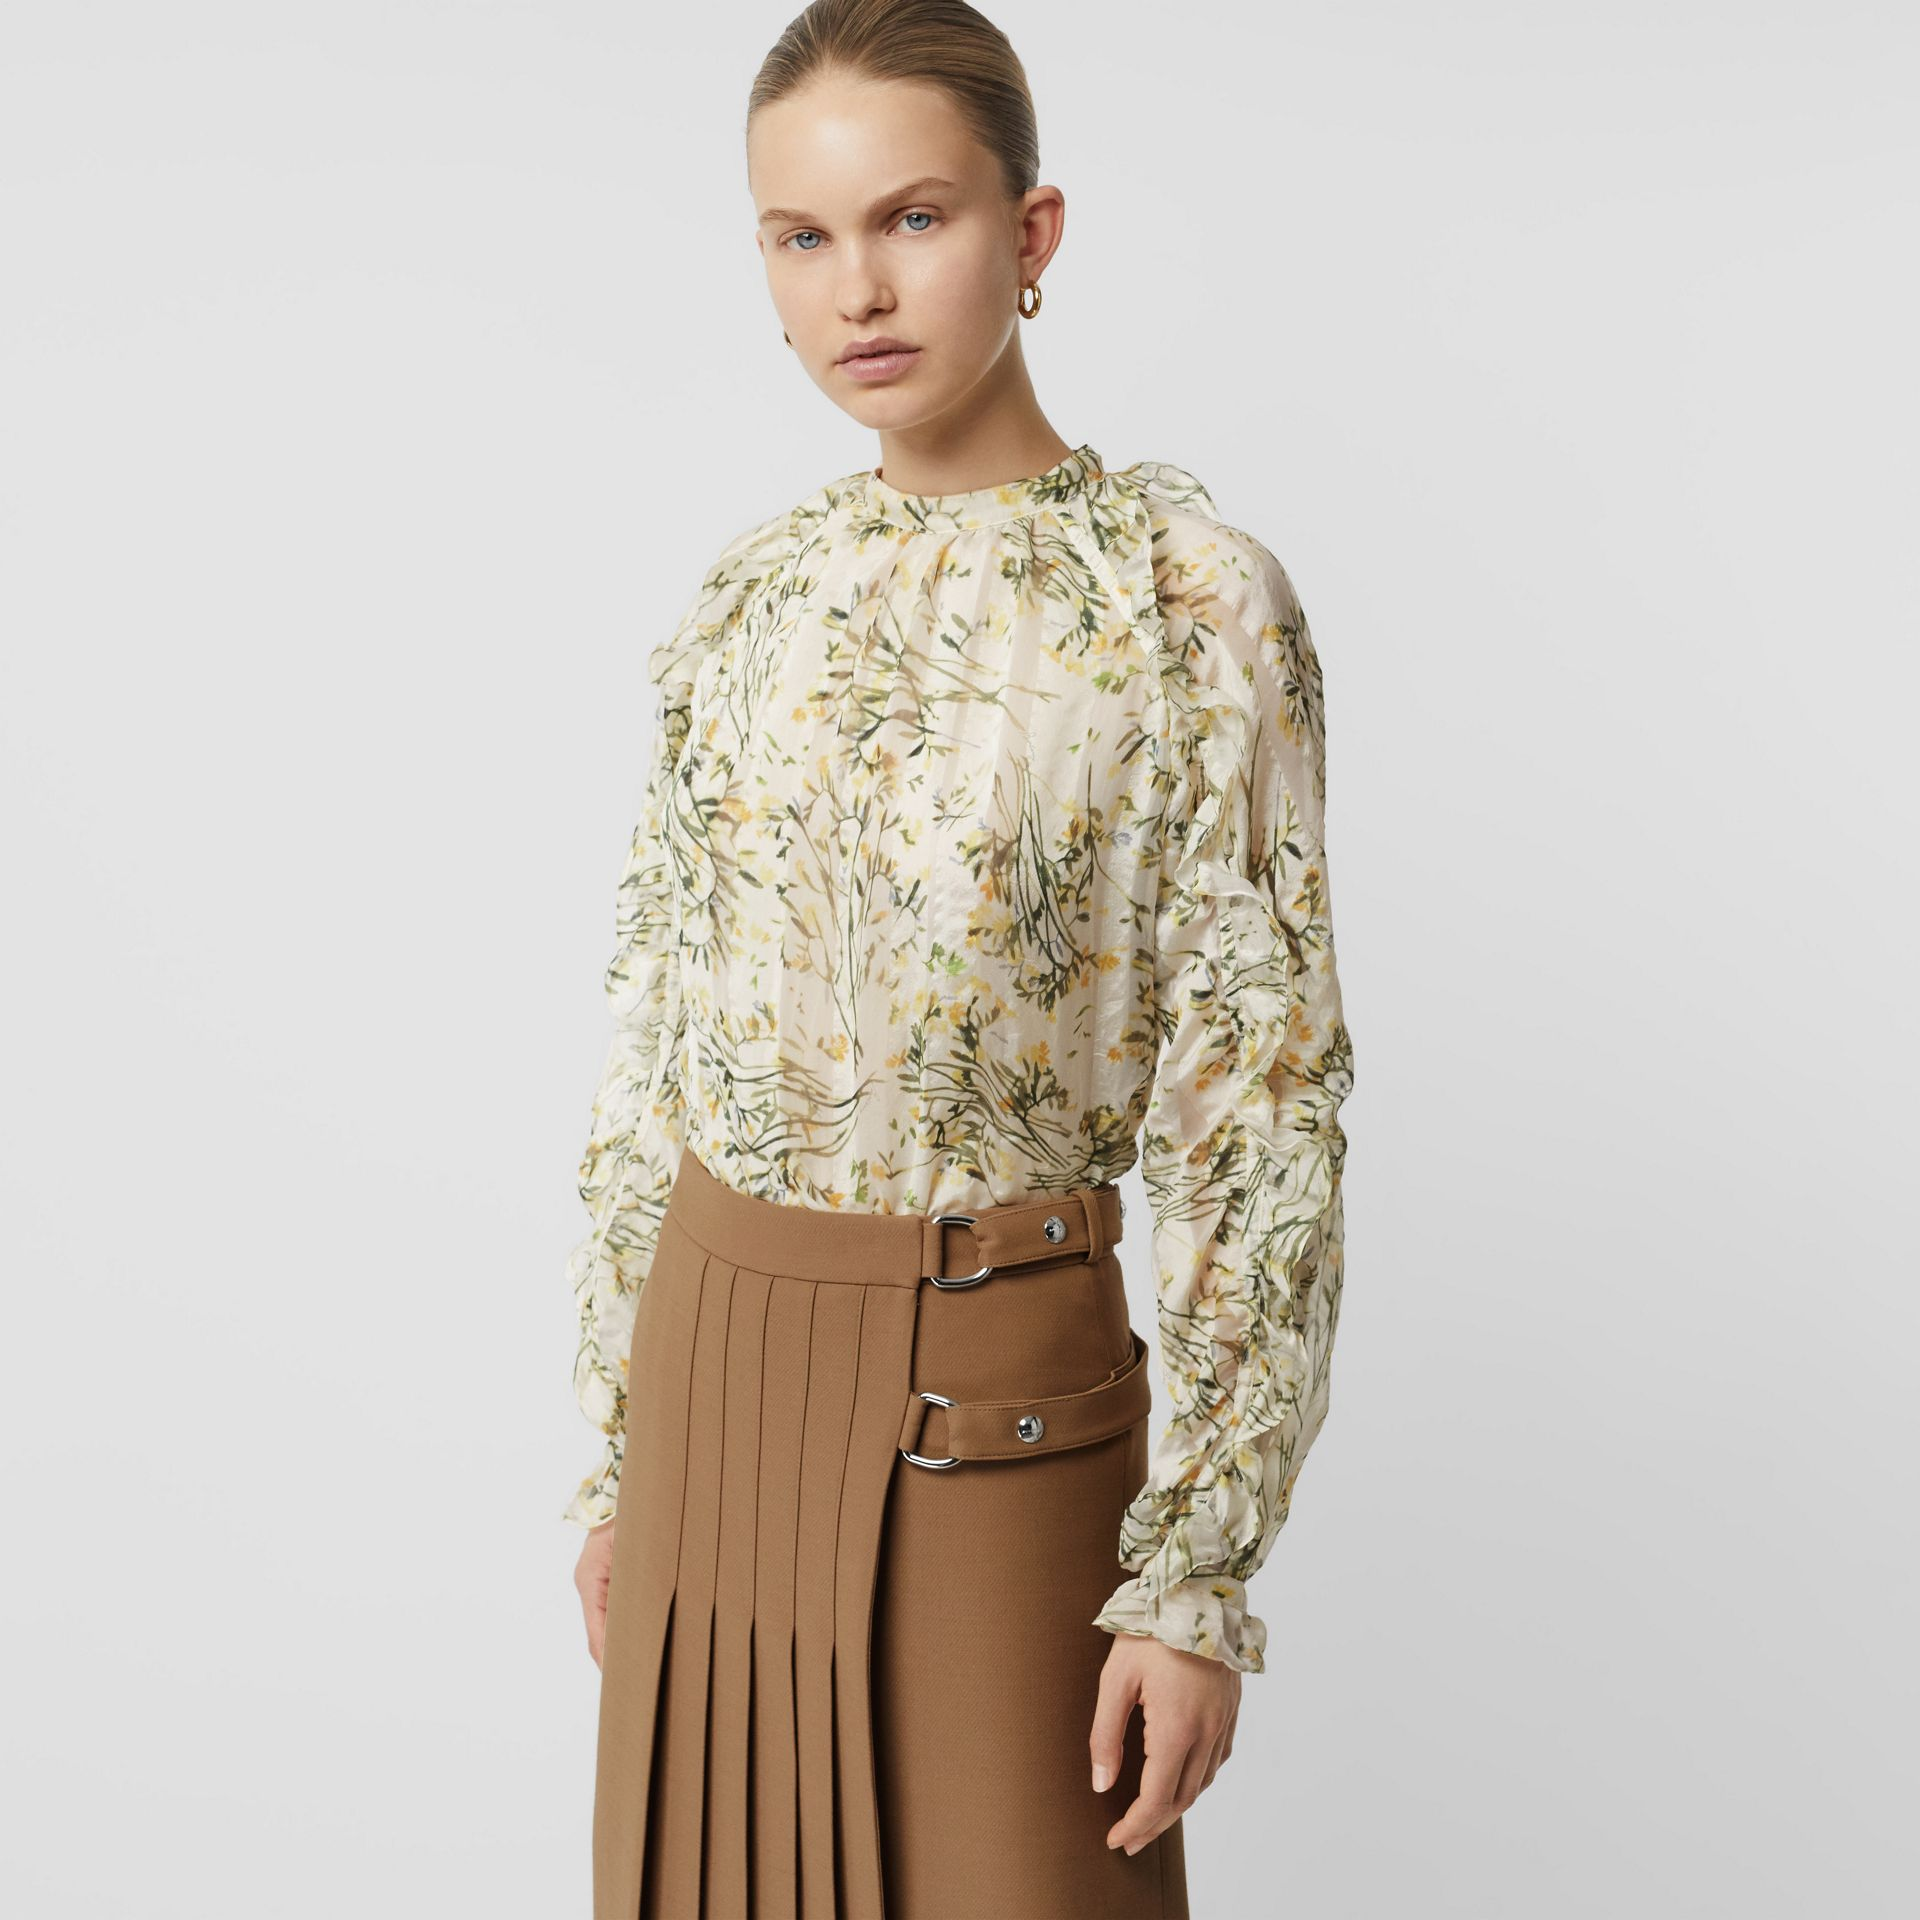 Ruffle Detail Floral Silk Blend Blouse in Lawn Green - Women | Burberry Australia - gallery image 4